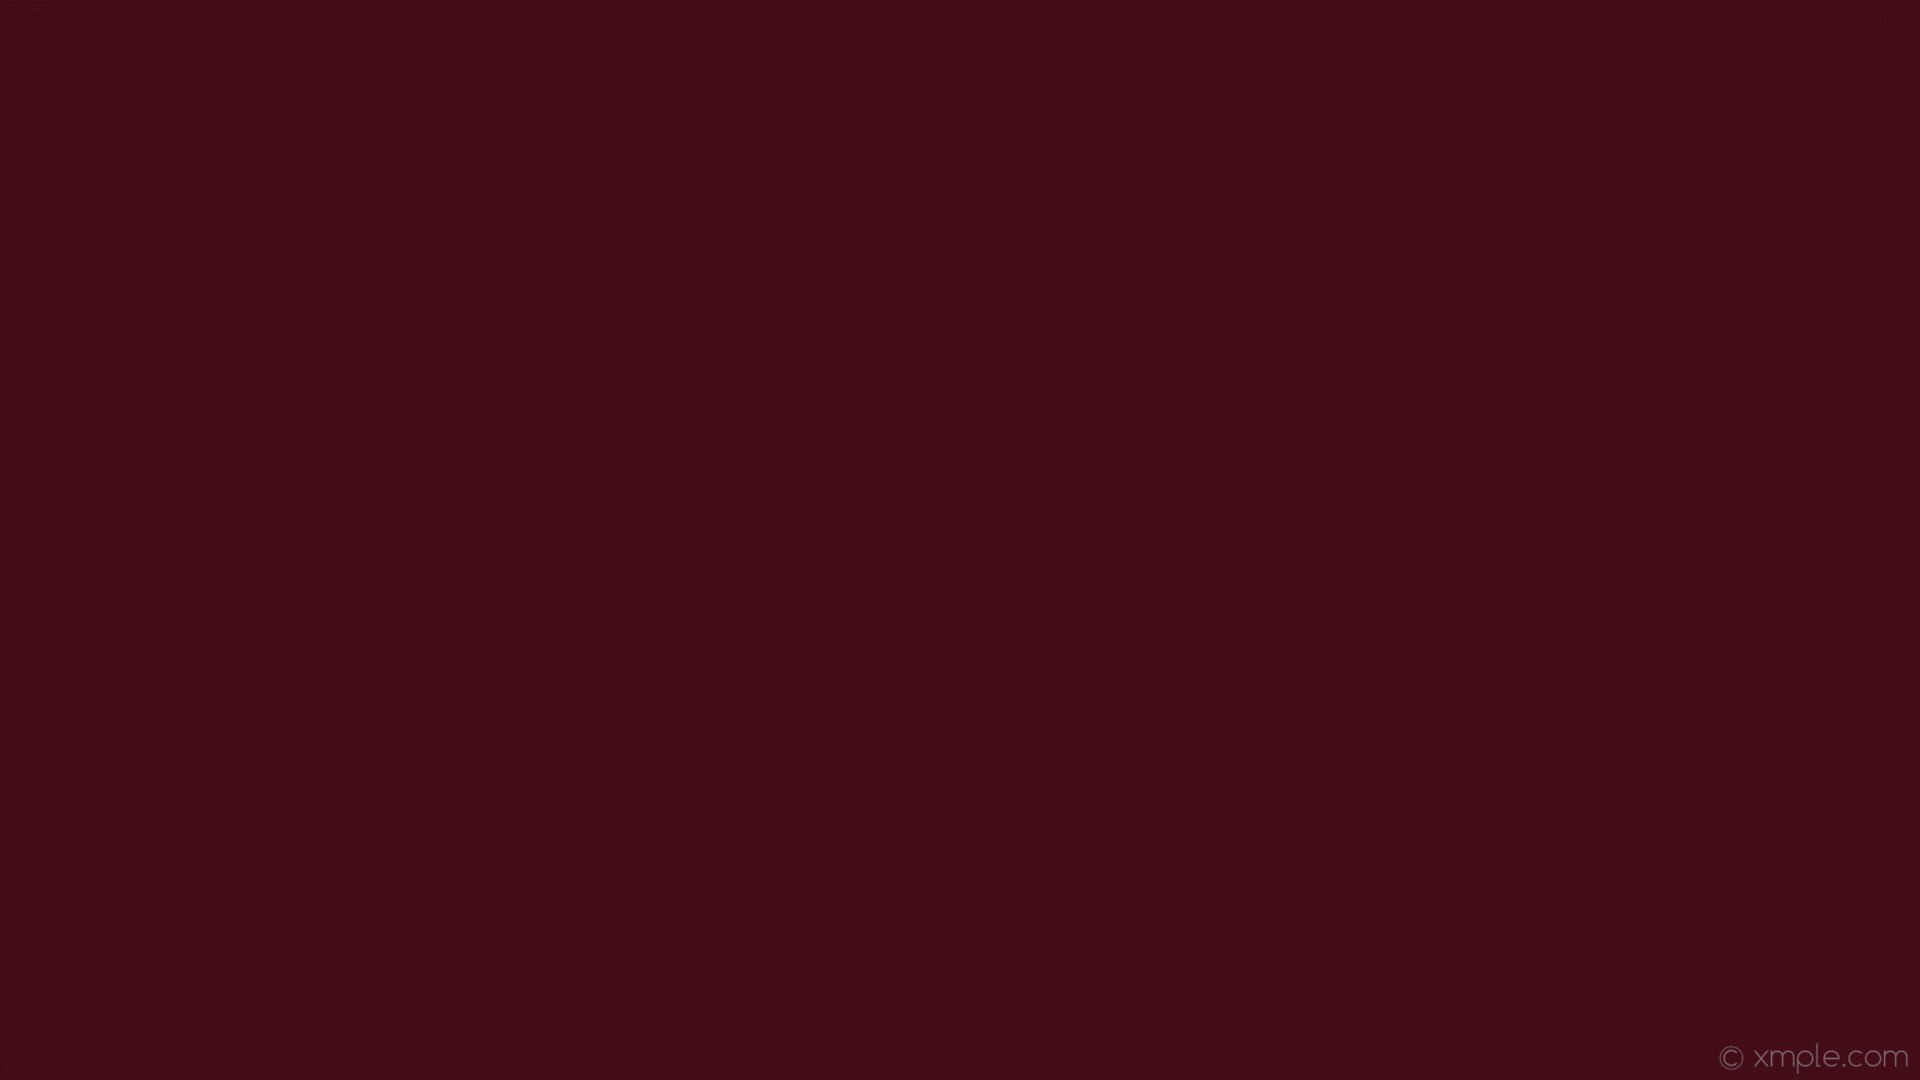 solid maroon color 876577 hd wallpaper backgrounds download solid maroon color 876577 hd